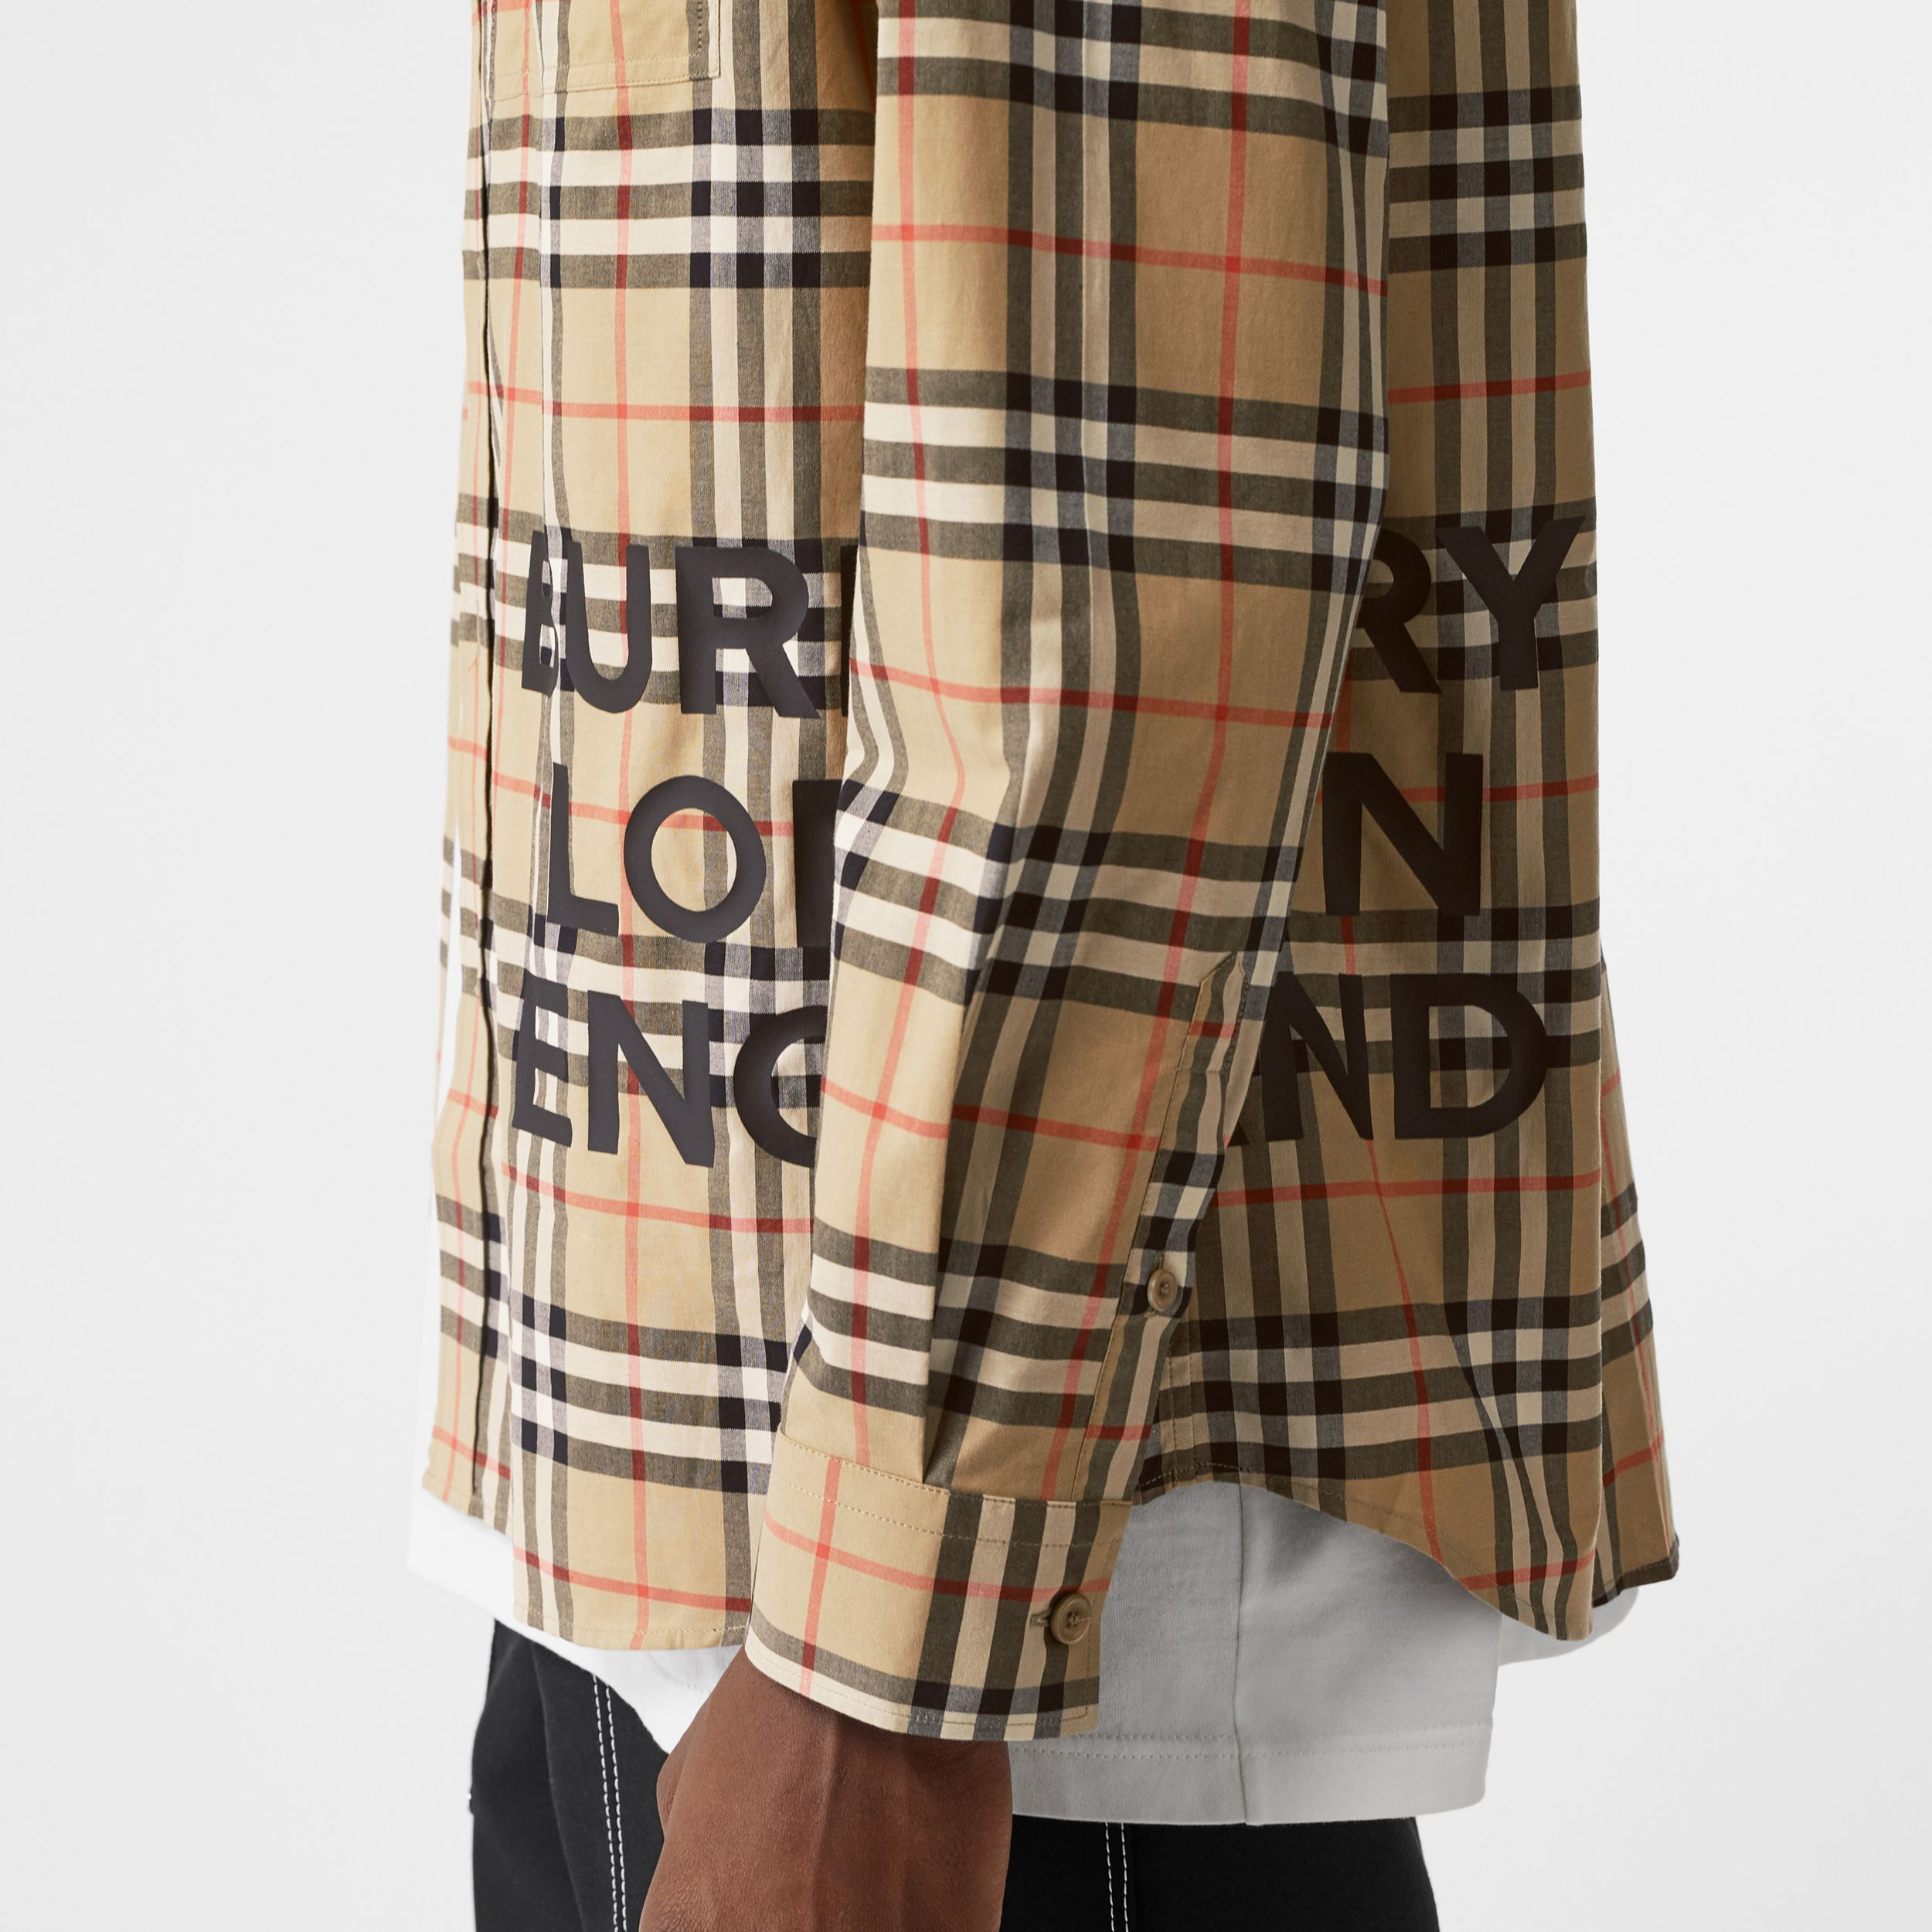 Logo Print Check Cotton Oversized Shirt in Archive Beige - Women | Burberry United States - 2